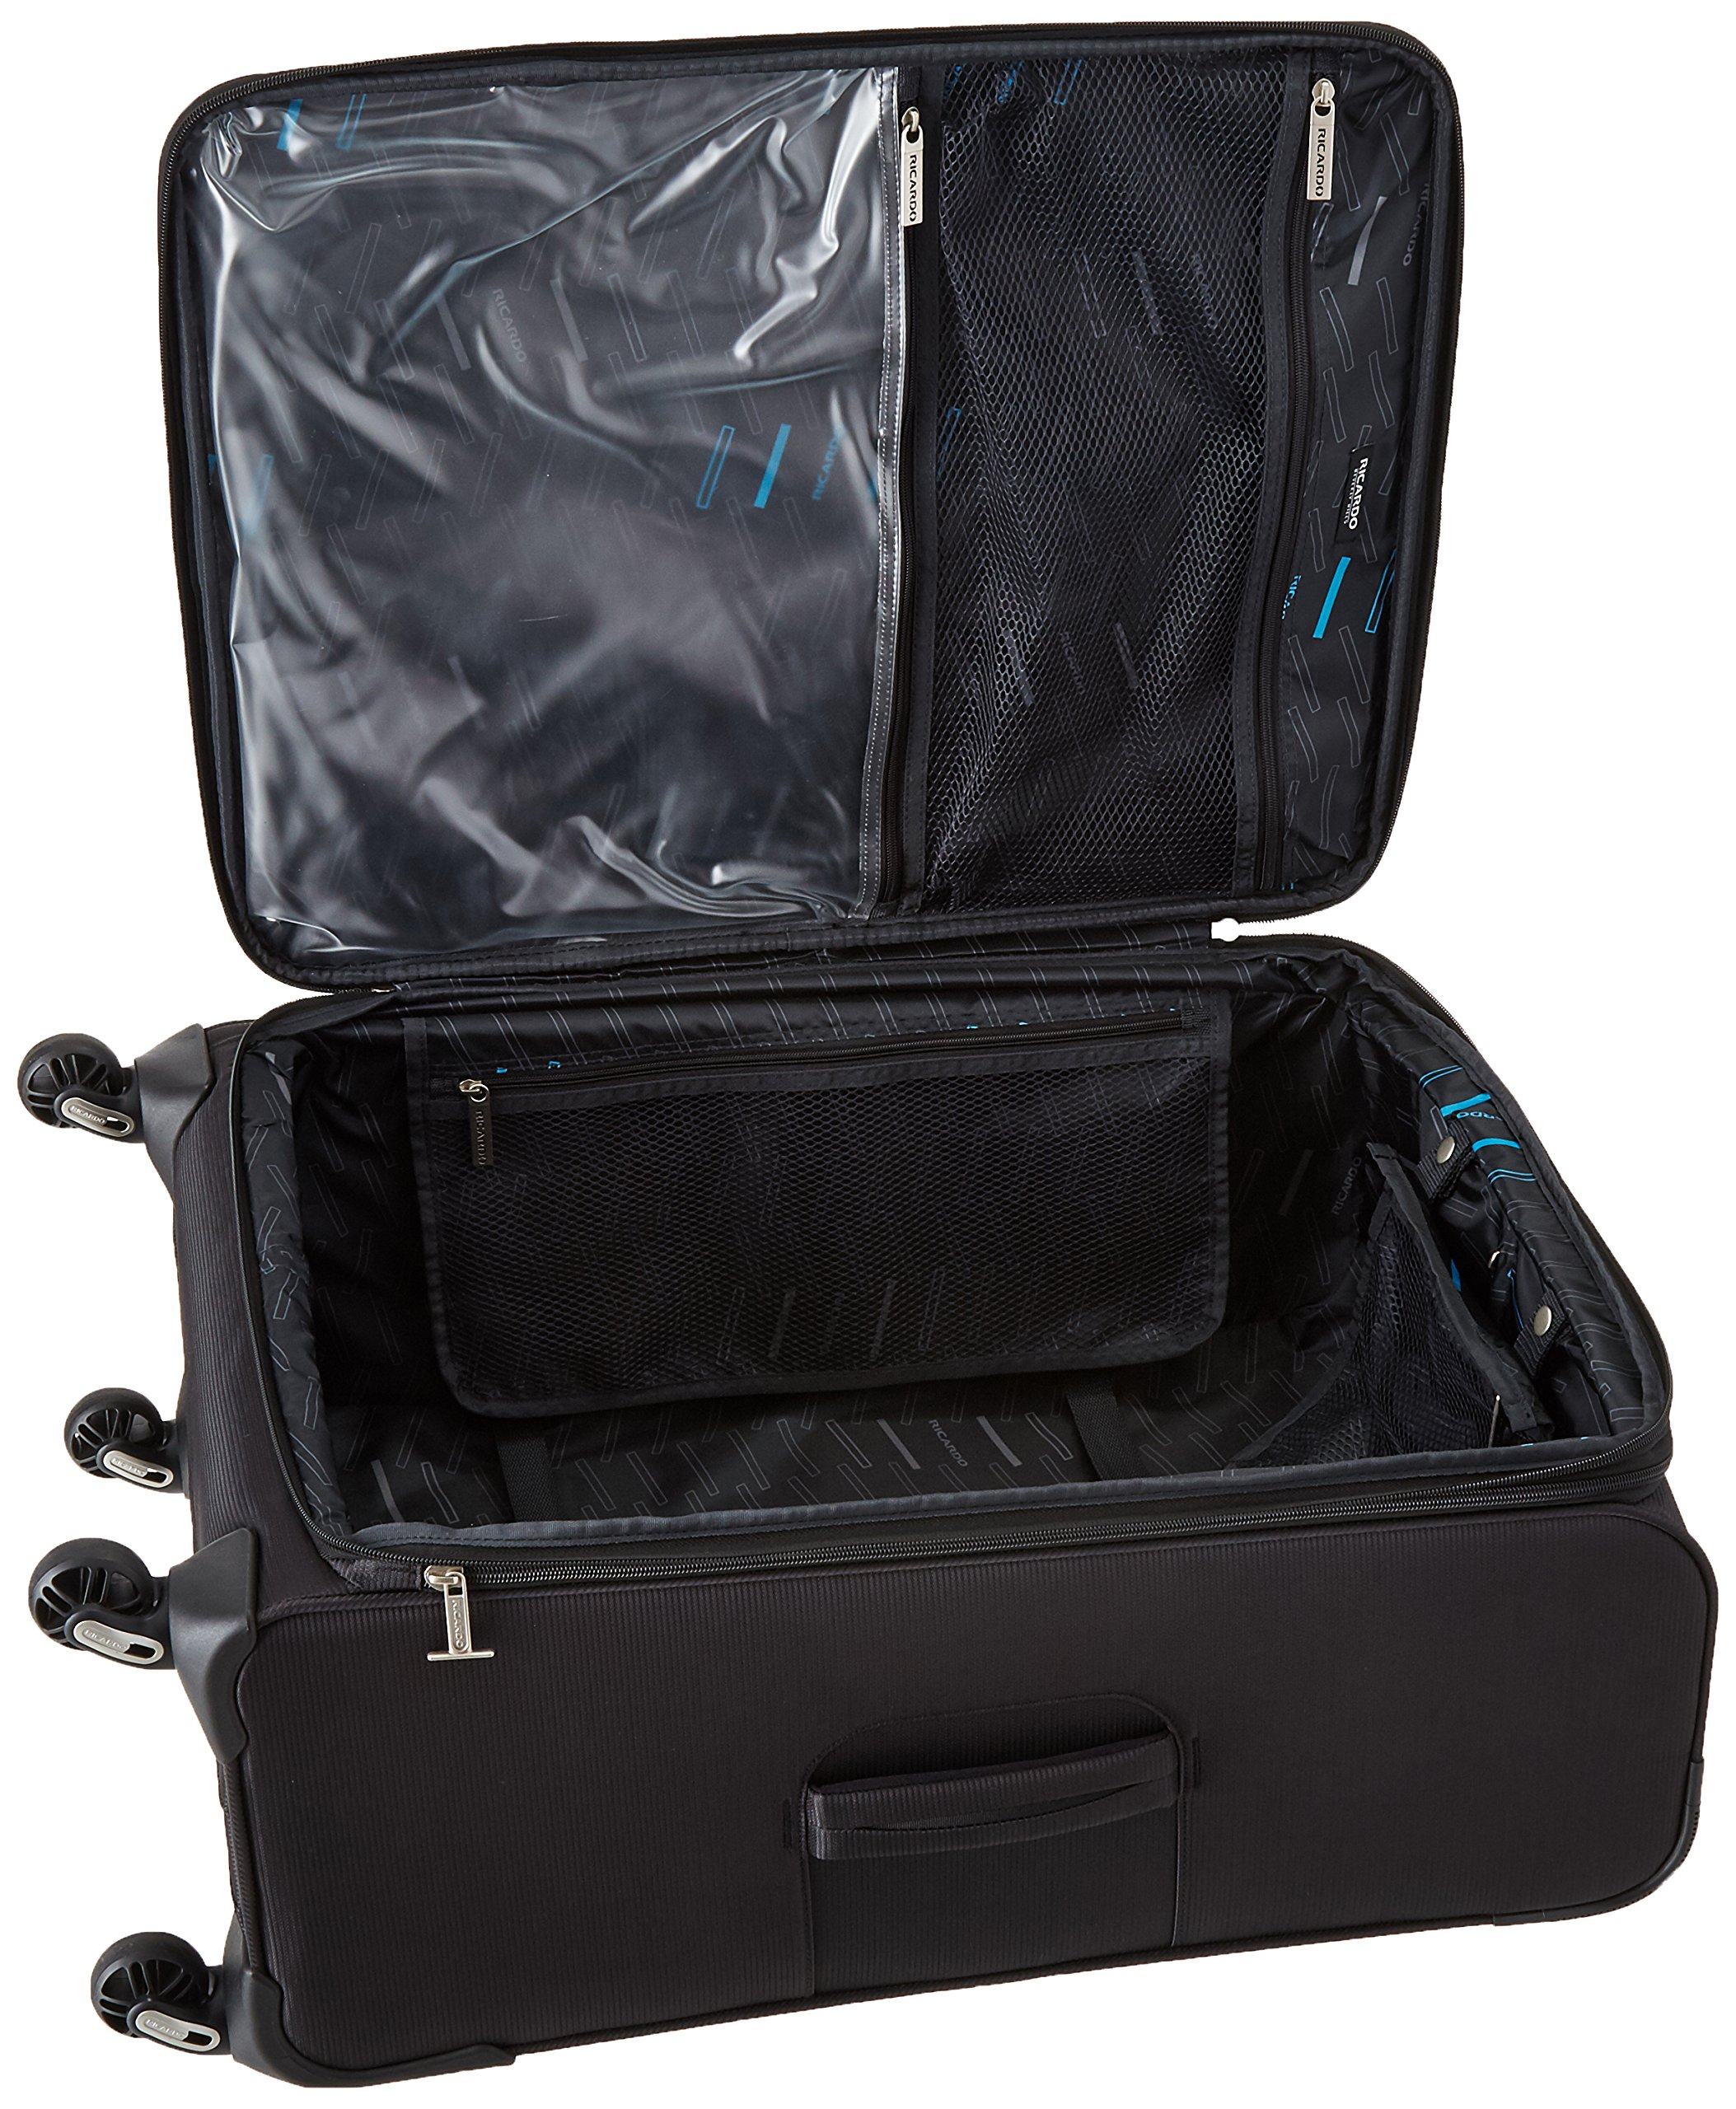 Ricardo Beverly Hills Del Mar 25-inch 4 Wheel Expandable Upright, Black, One Size by Ricardo Beverly Hills (Image #5)